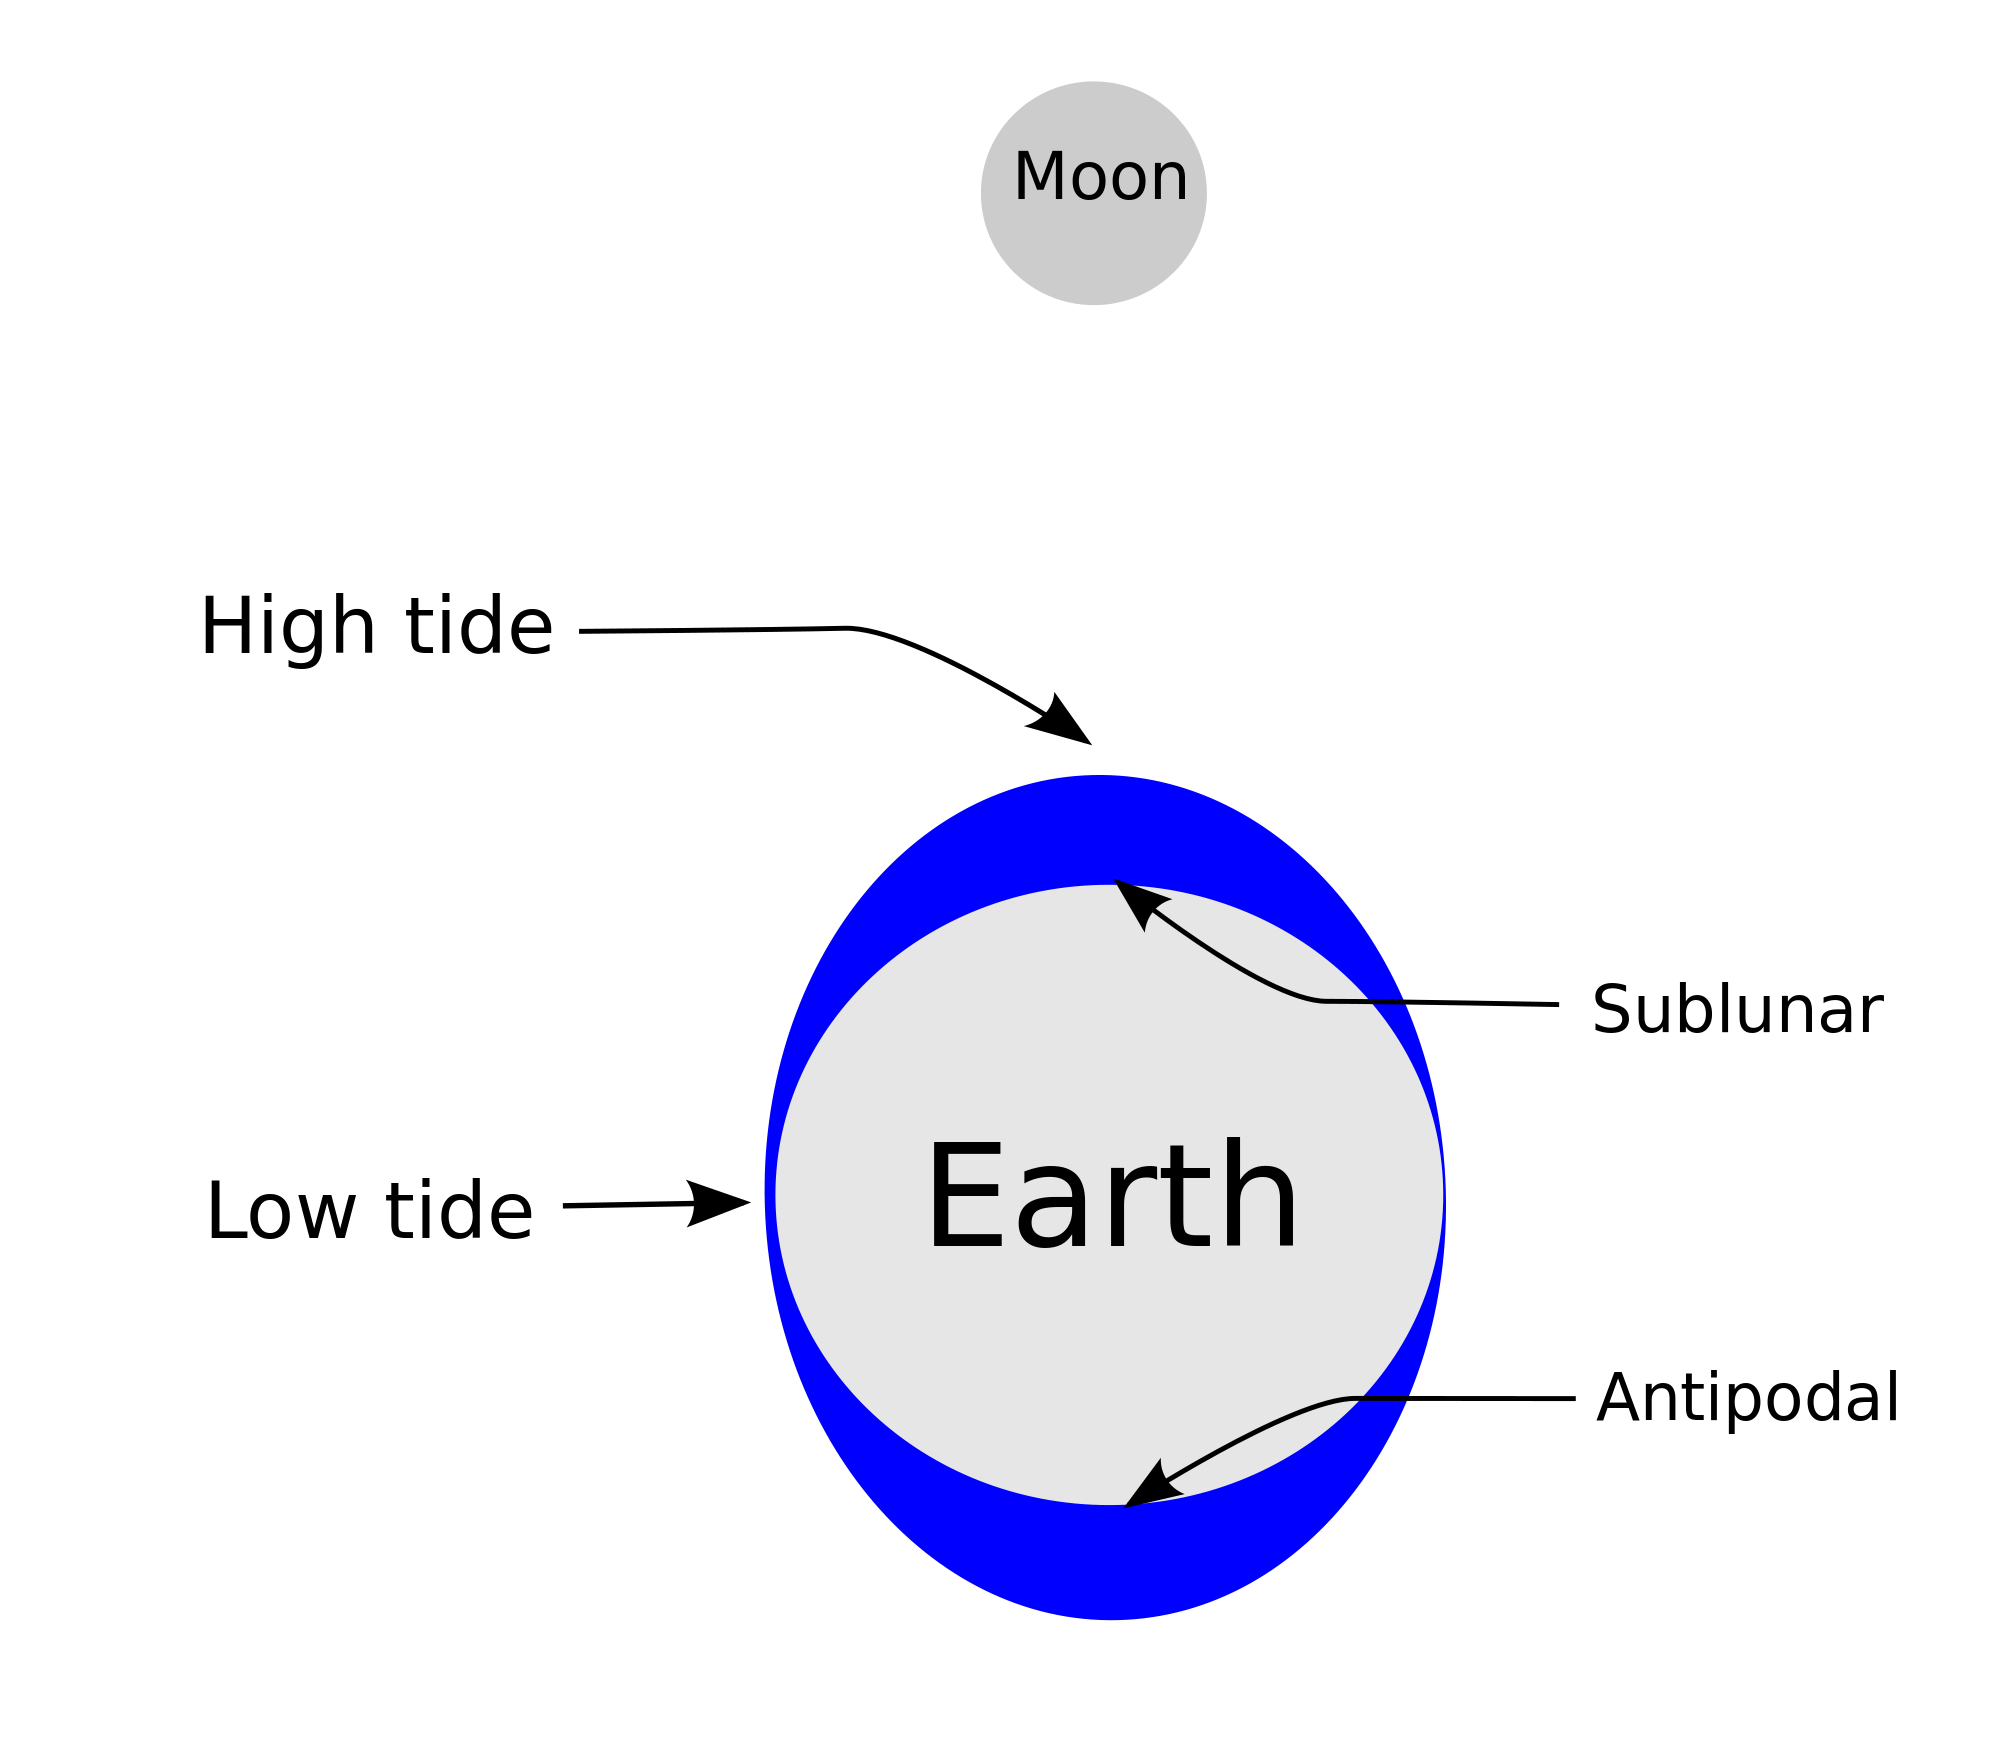 variations in ocean tides essay Classroom activity the moon's relation to ocean tides overview middle school and high school level this activity is designed to show students the relationship between ocean tides and the.